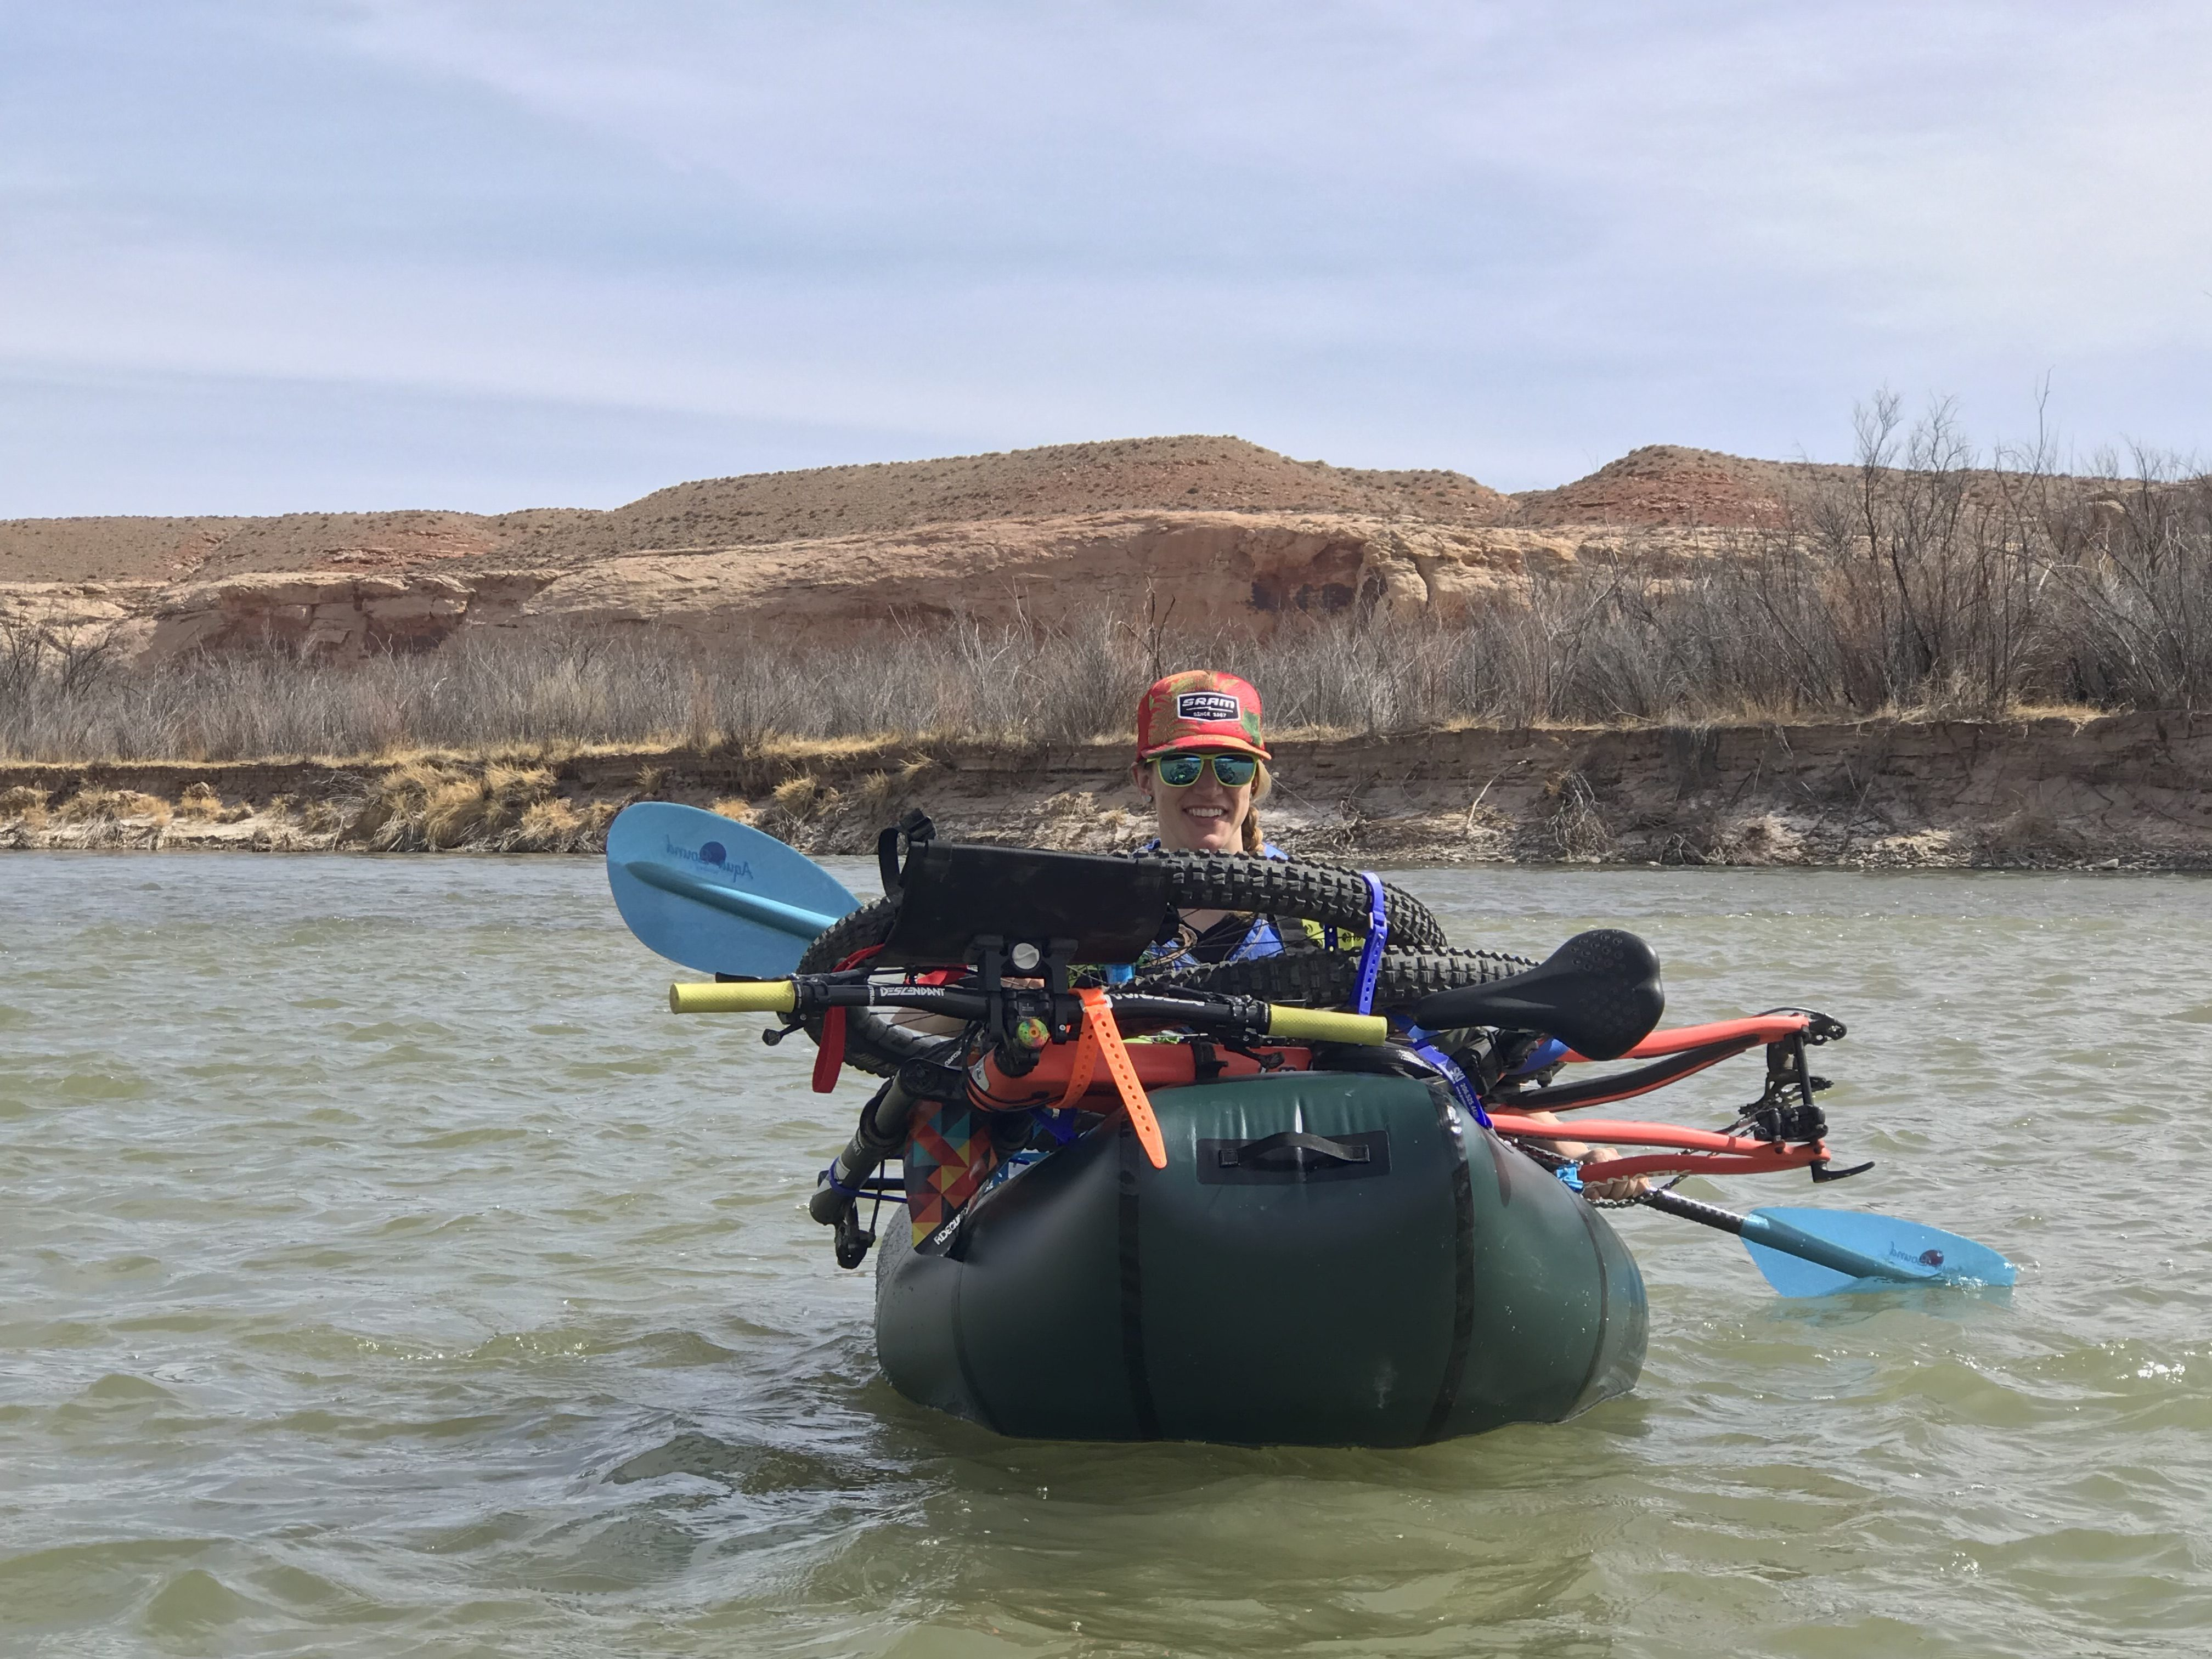 Gear Alpacka Rafts On River Mountain Town Magazine